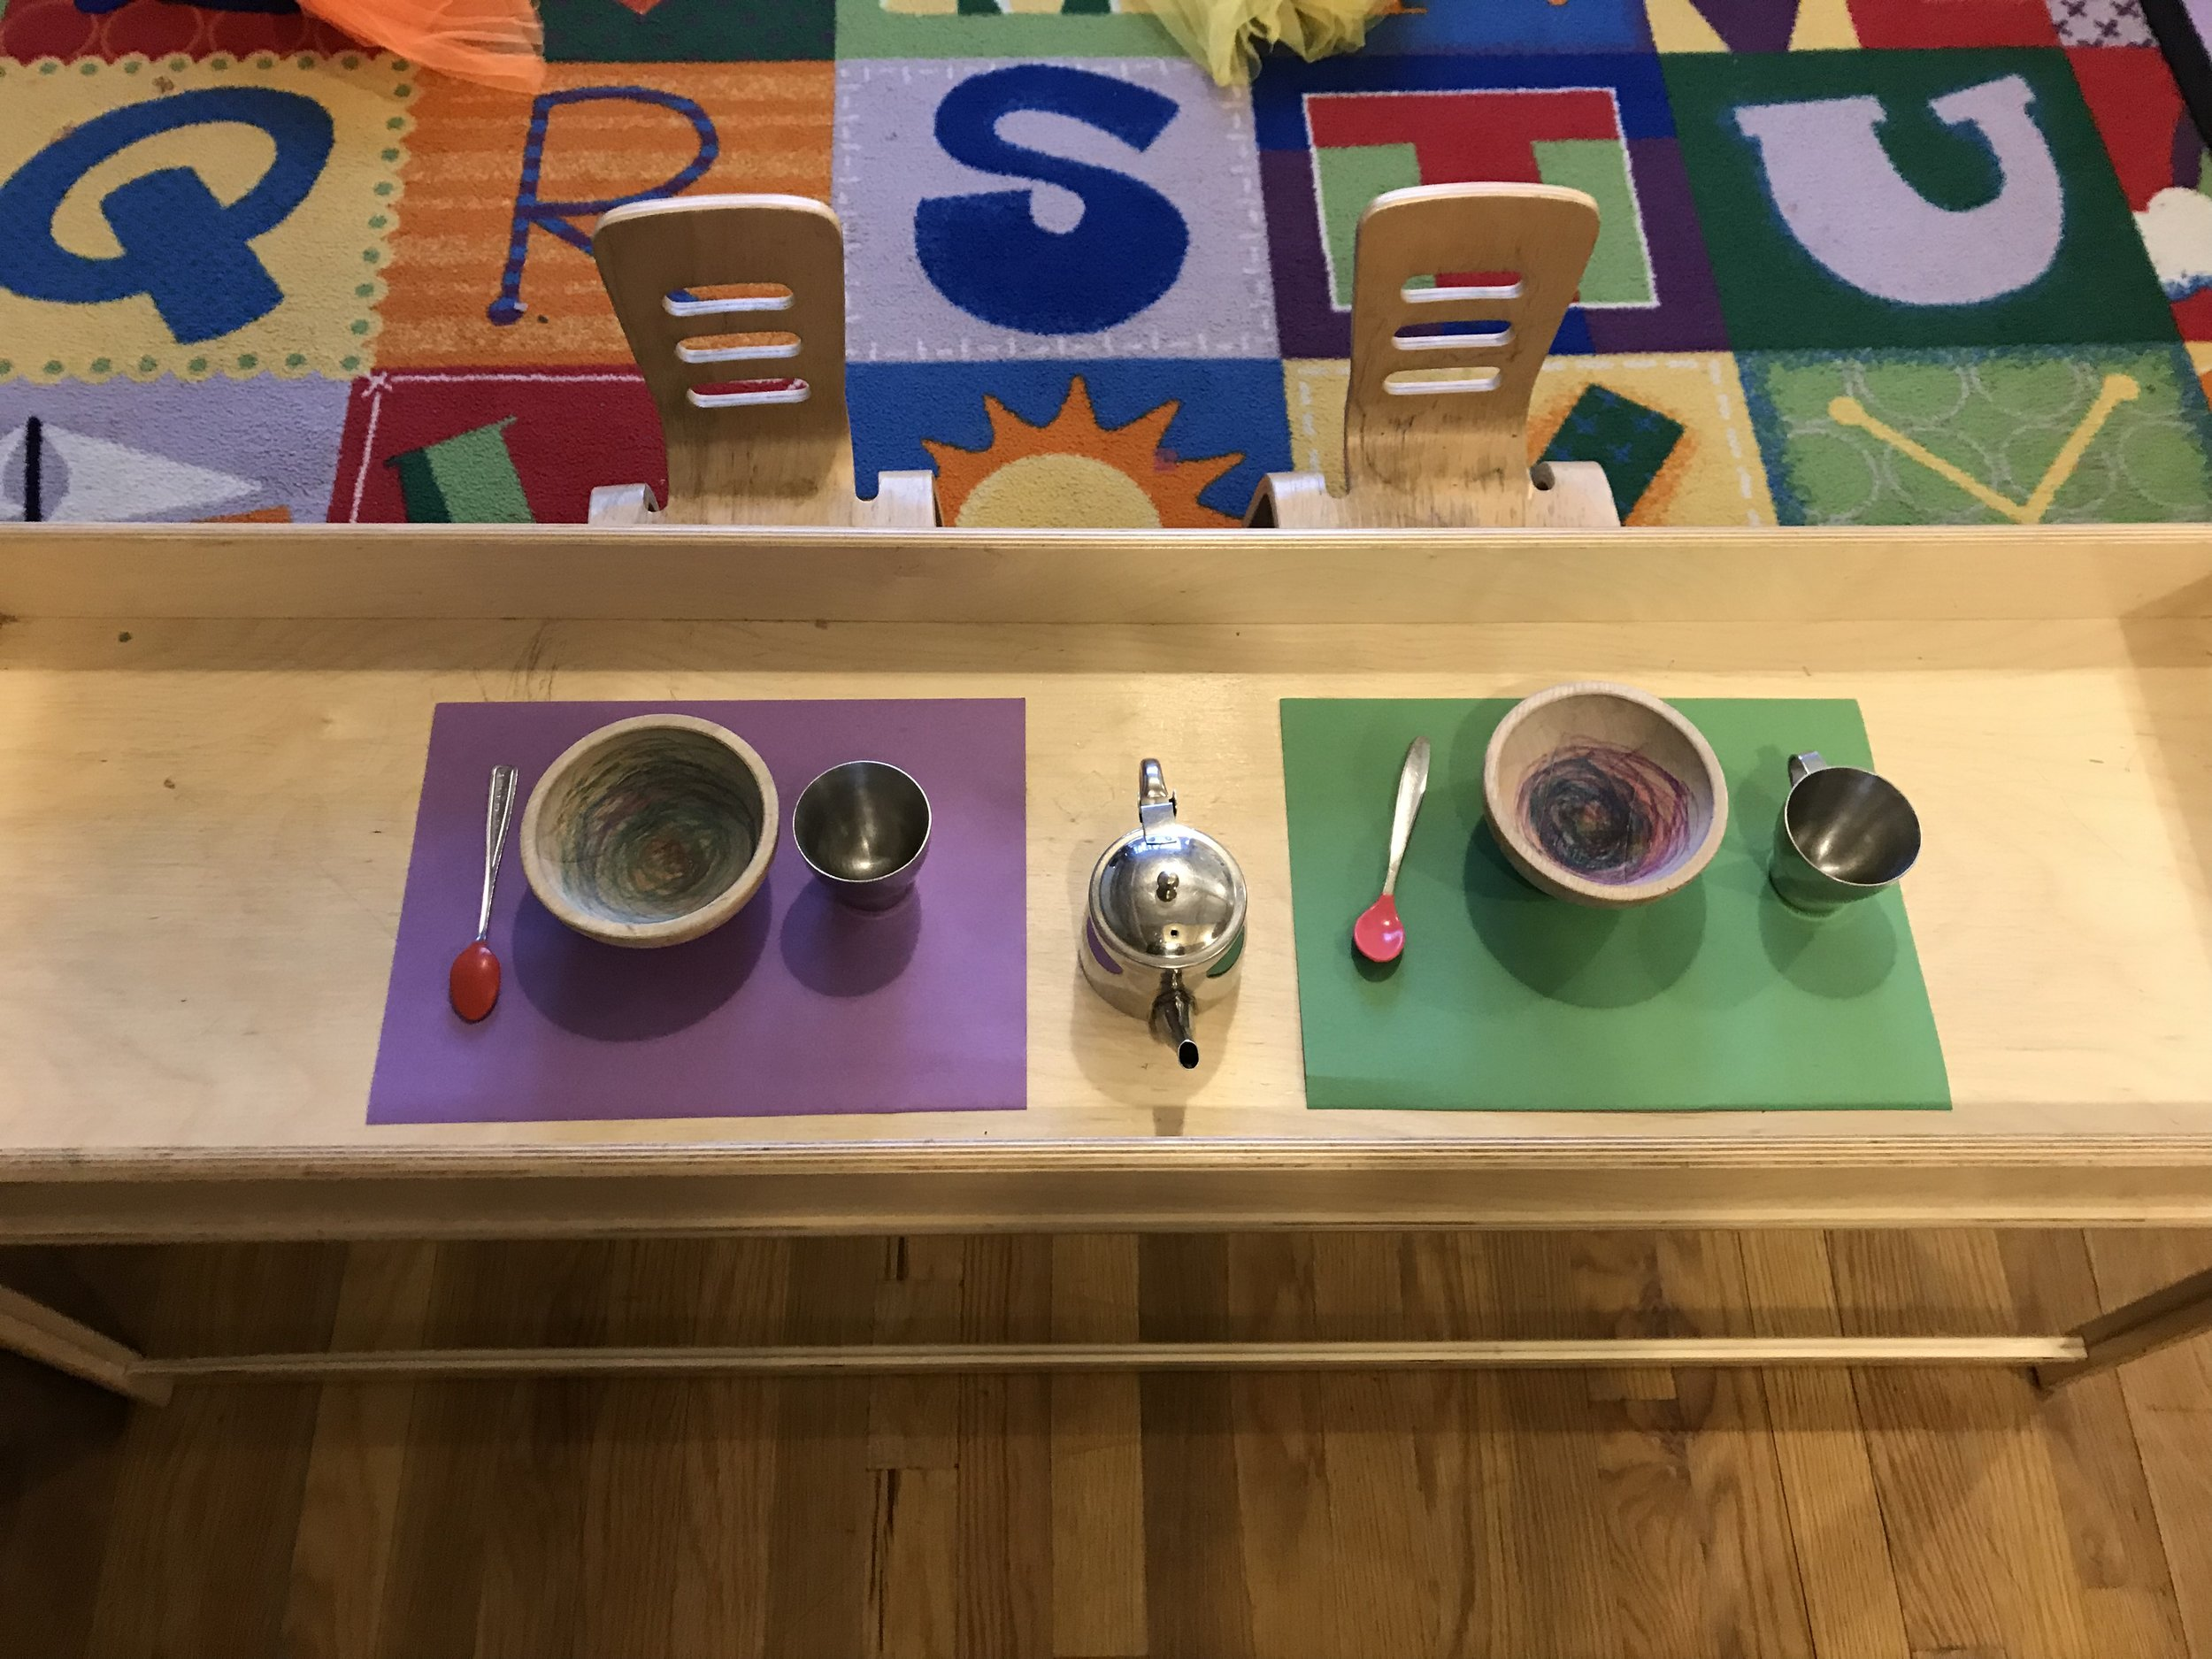 - Invitation to use dramatic play materials